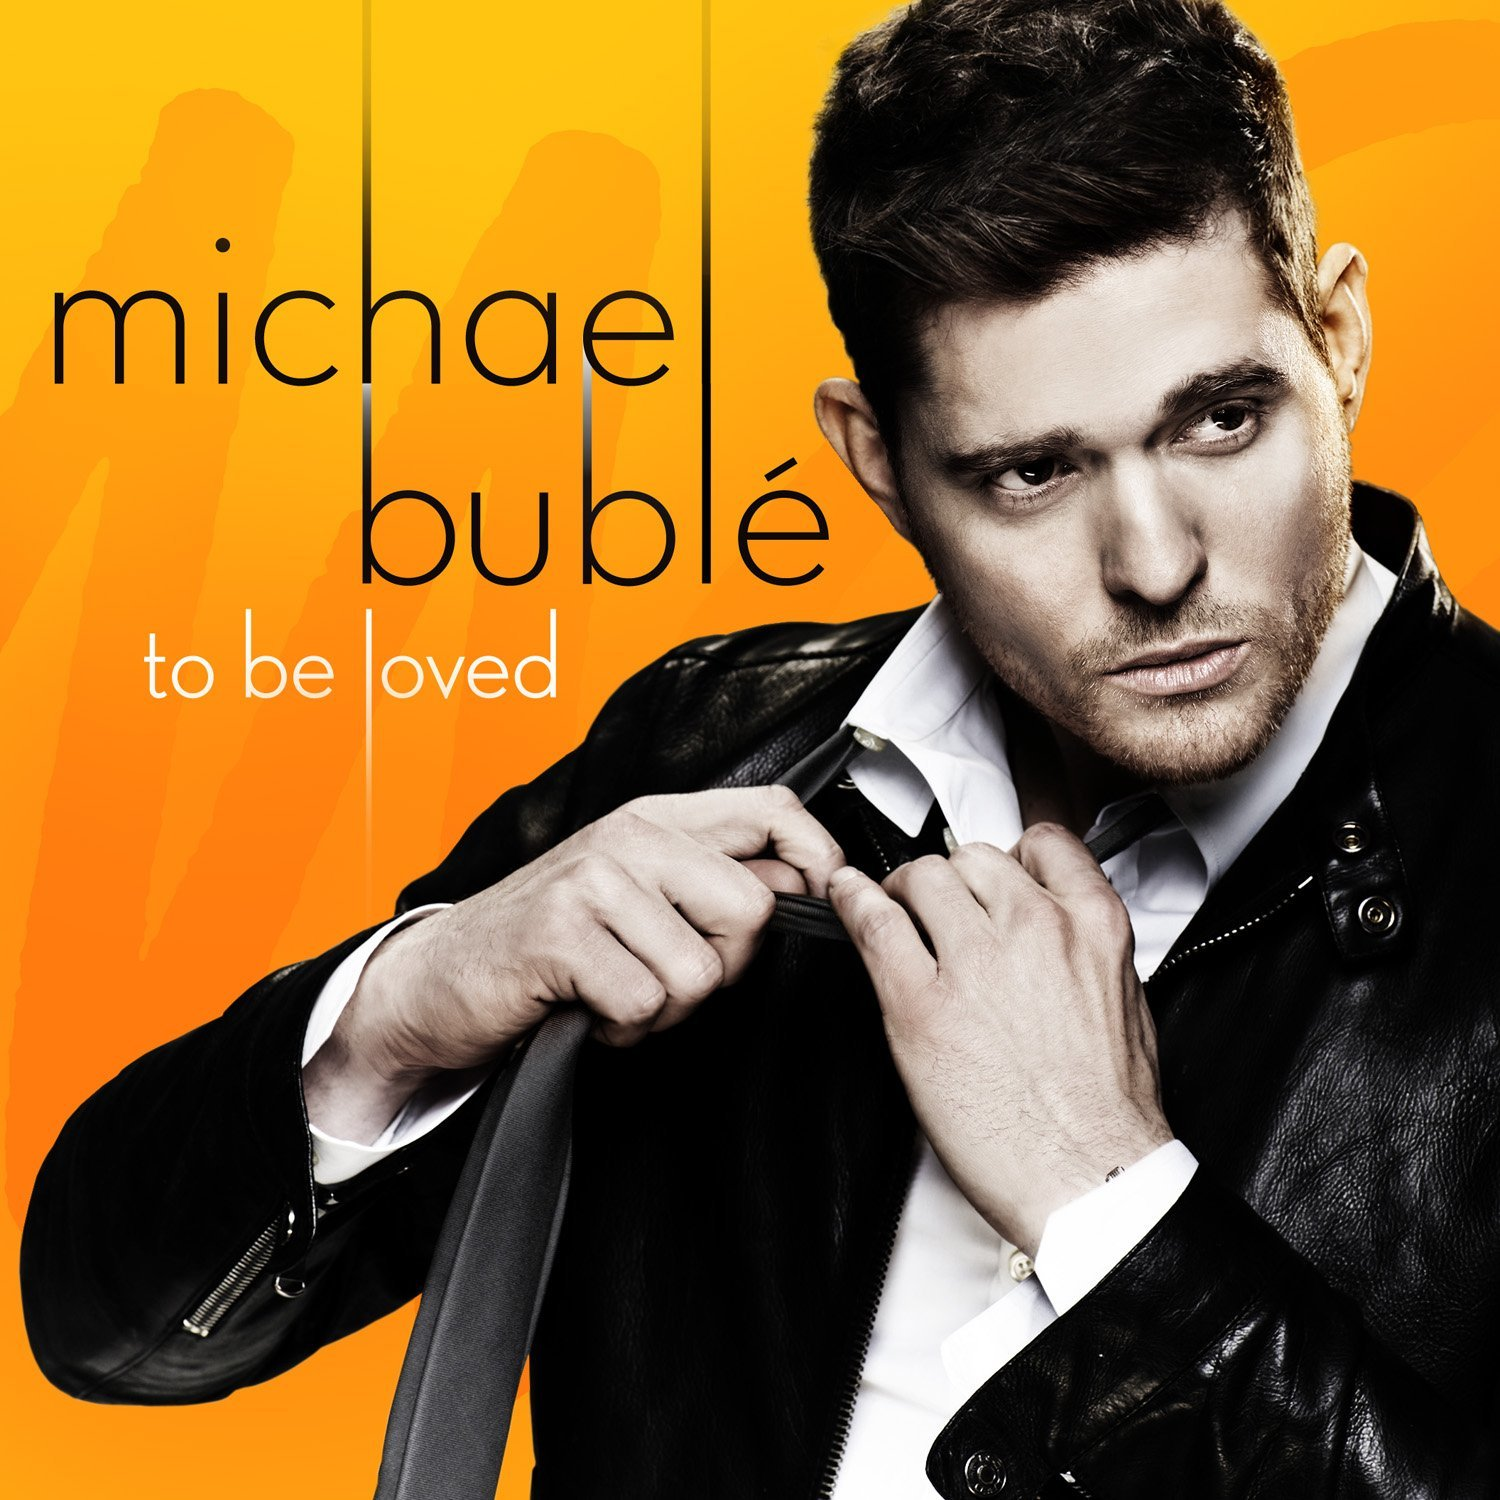 Michael Bublé Michael Bublé: CHOCThoughts: A Choc-nut Full Of Thoughts: Michael Buble's